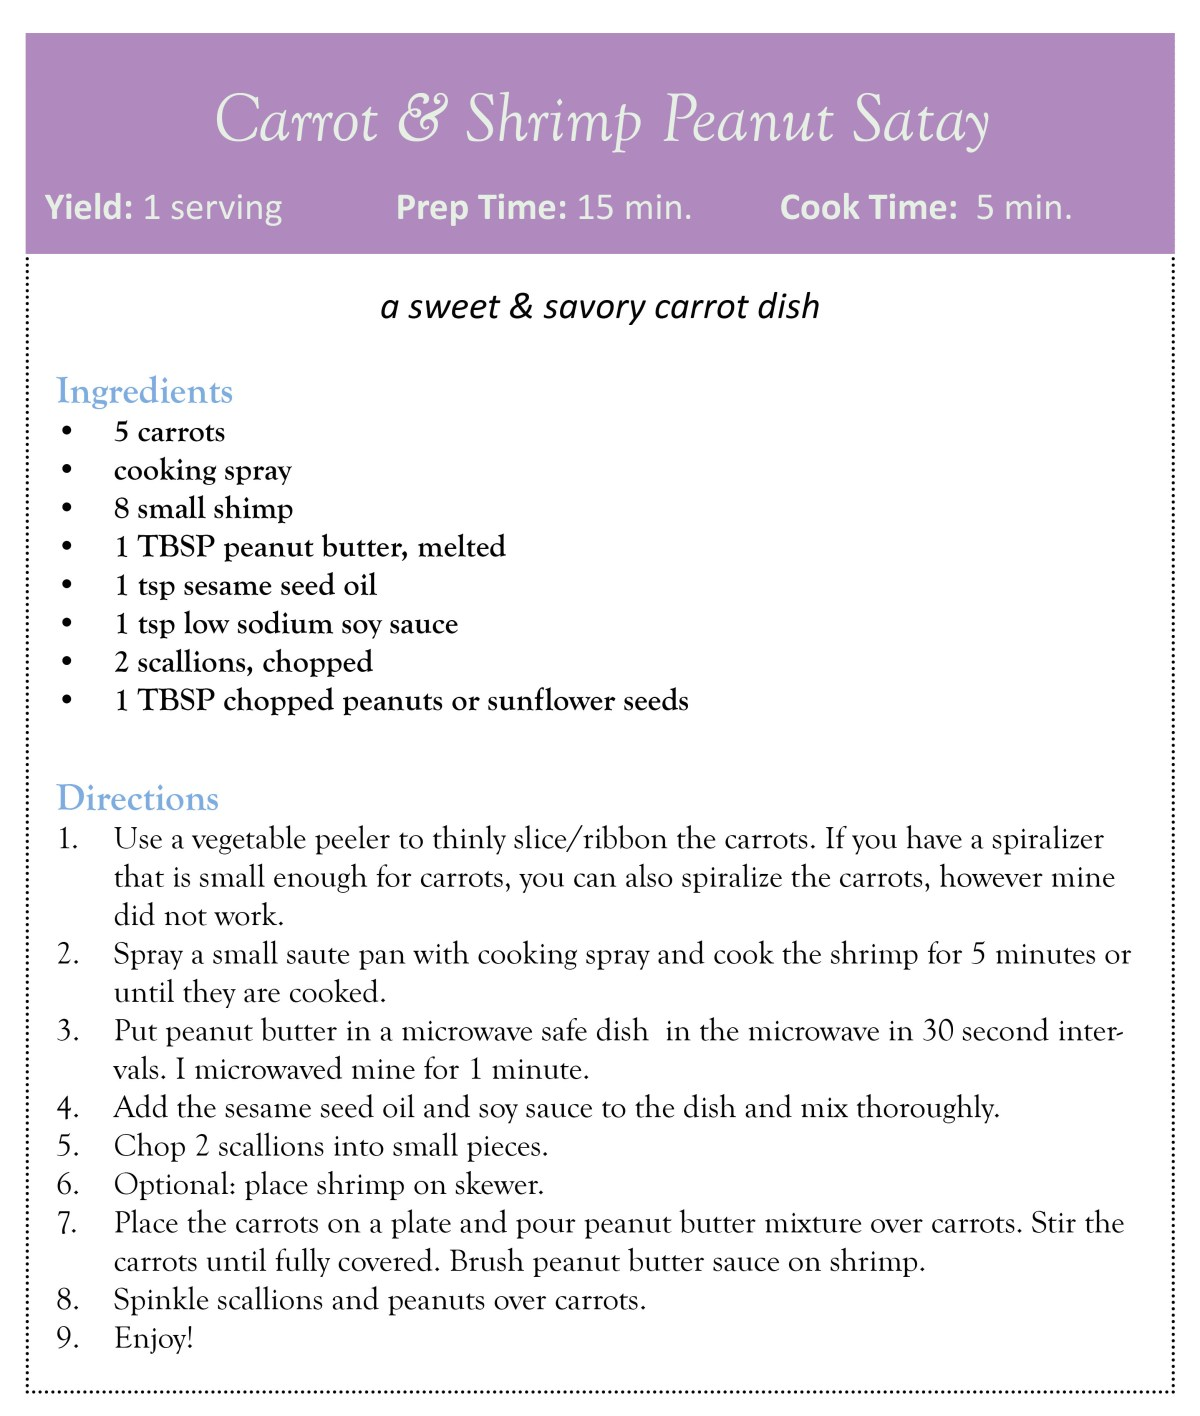 carrot & shrimp peanut satay